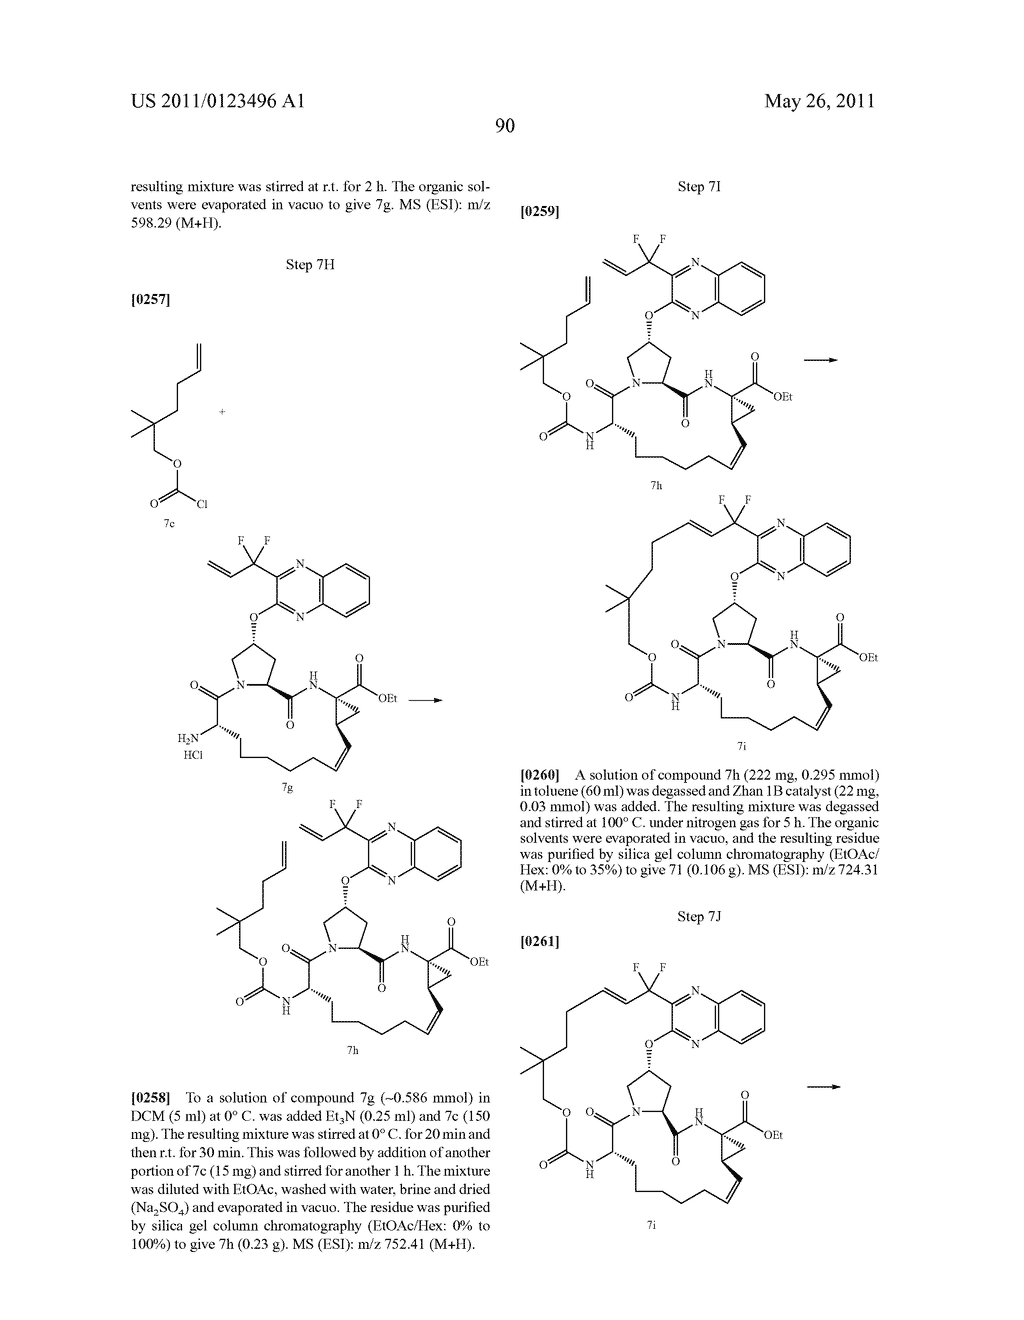 BISMACROCYCLIC COMPOUNDS AS HEPATITIS C VIRUS INHIBITORS - diagram, schematic, and image 91